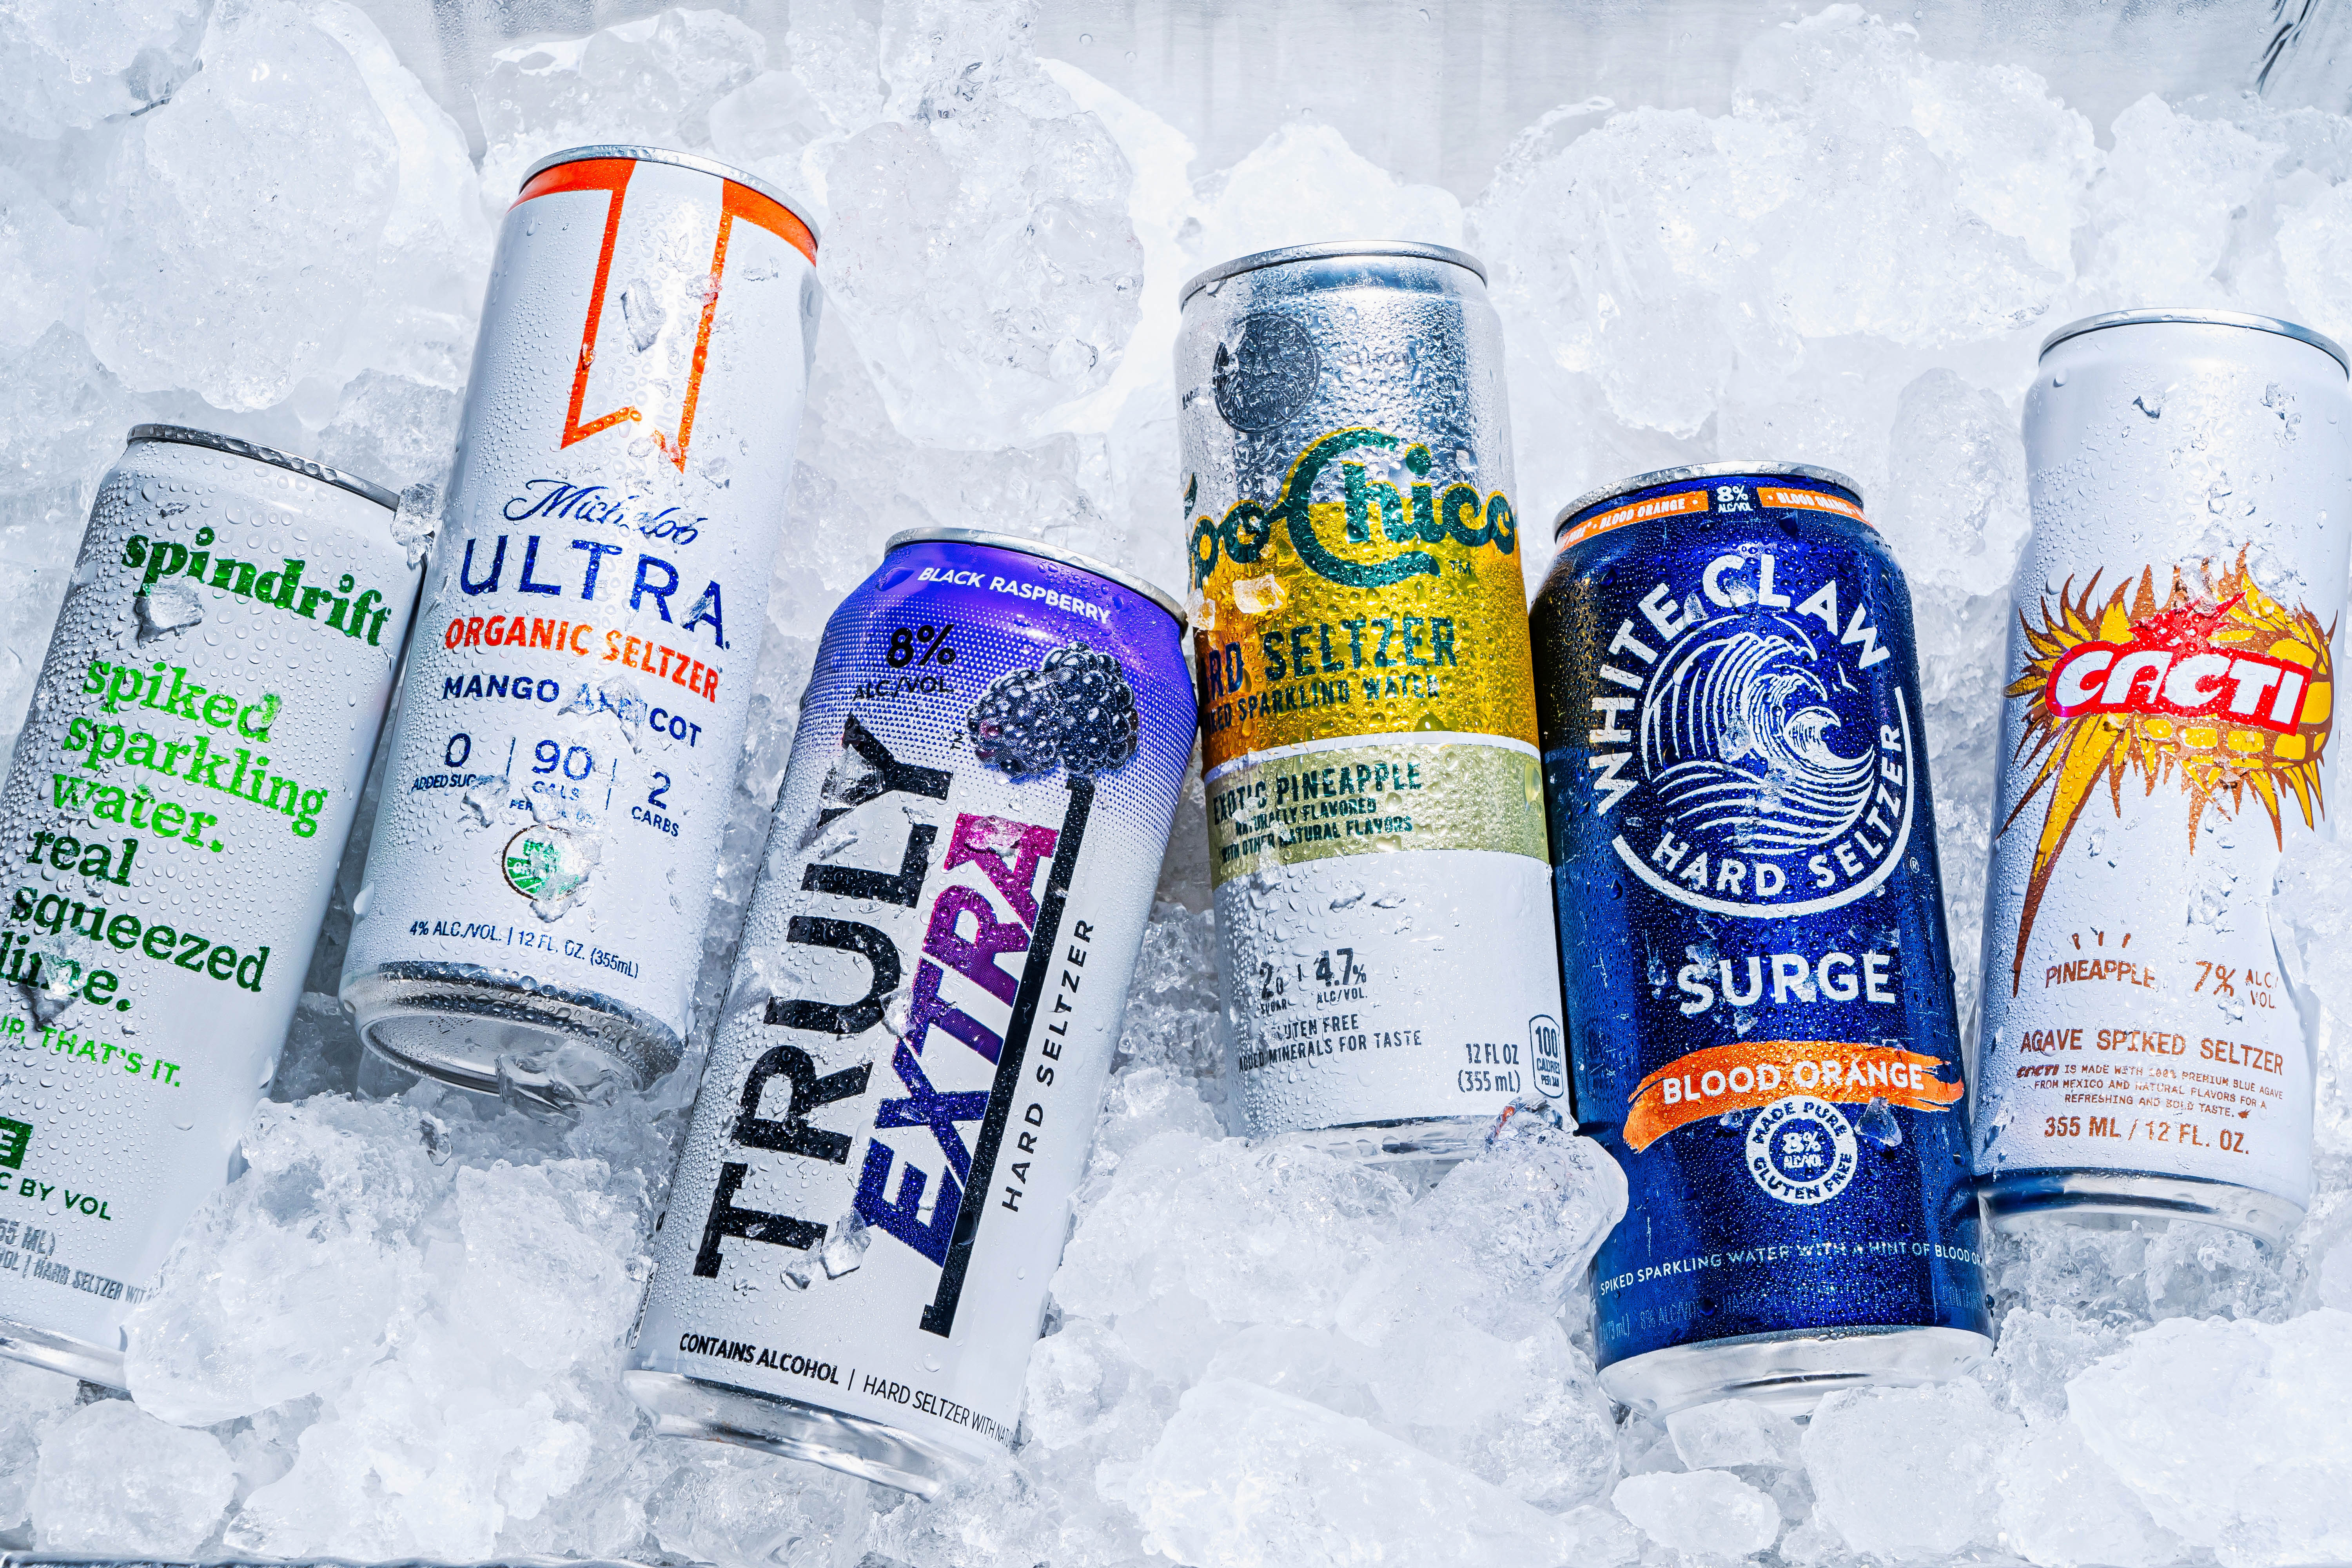 bostonglobe.com - Anissa Gardizy - Boston Beer stock plunges more than 20 percent after it 'overestimated' demand for Truly Hard Seltzer